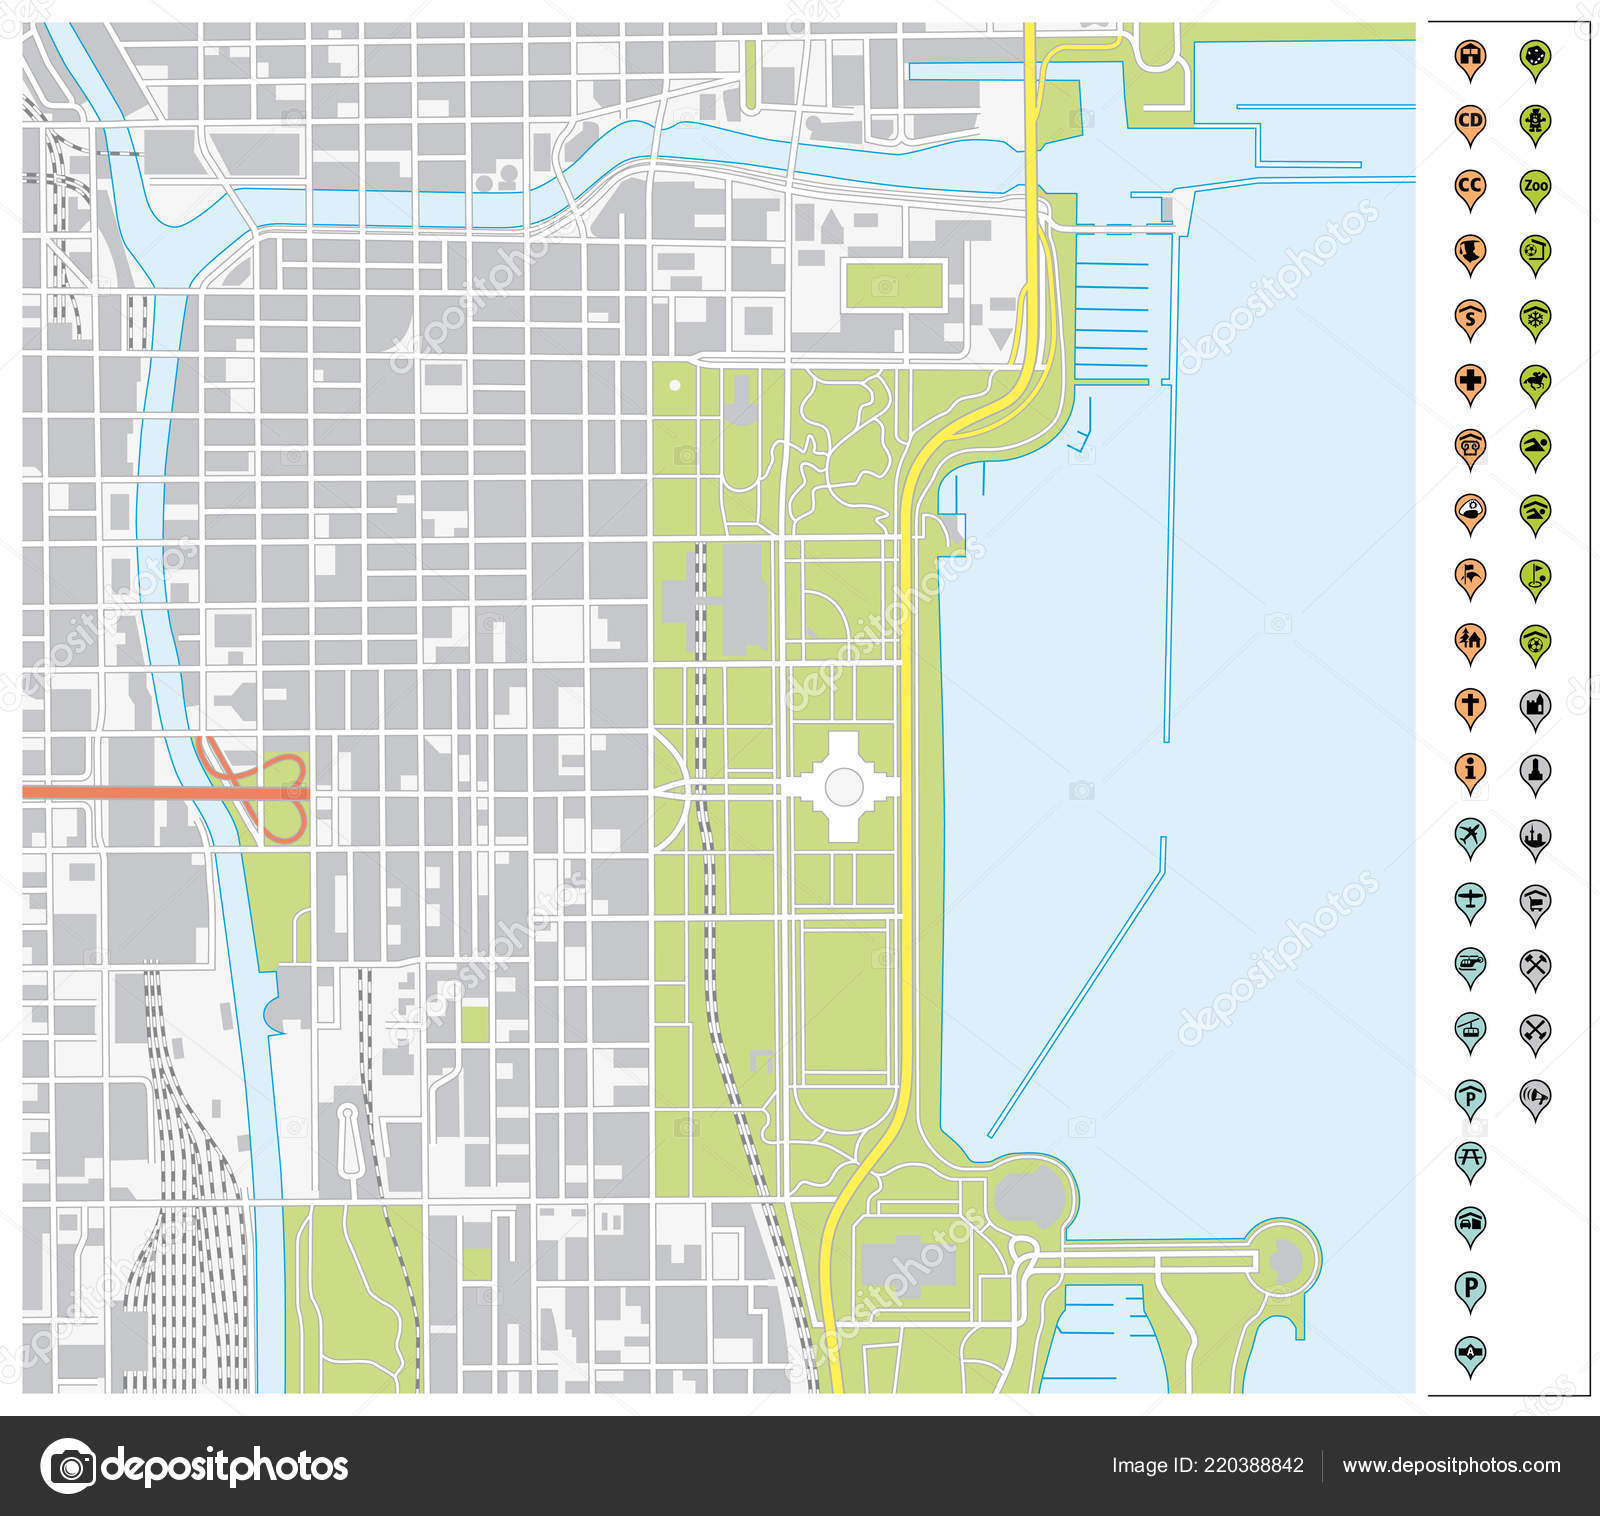 Vector Street Map Downtown Chicago Pin Pointers ... on schools downtown chicago, shopping downtown chicago, tourist map of lincoln park chicago, things to do downtown chicago, restaurants downtown chicago, hotels downtown chicago, food map downtown chicago, parks downtown chicago, city map chicago loop, map of downtown chicago, street downtown chicago, parking downtown chicago, nightlife downtown chicago, art downtown chicago, church downtown chicago, places to visit downtown chicago, city map st. charles, dining downtown chicago, attractions downtown chicago, apartments downtown chicago,